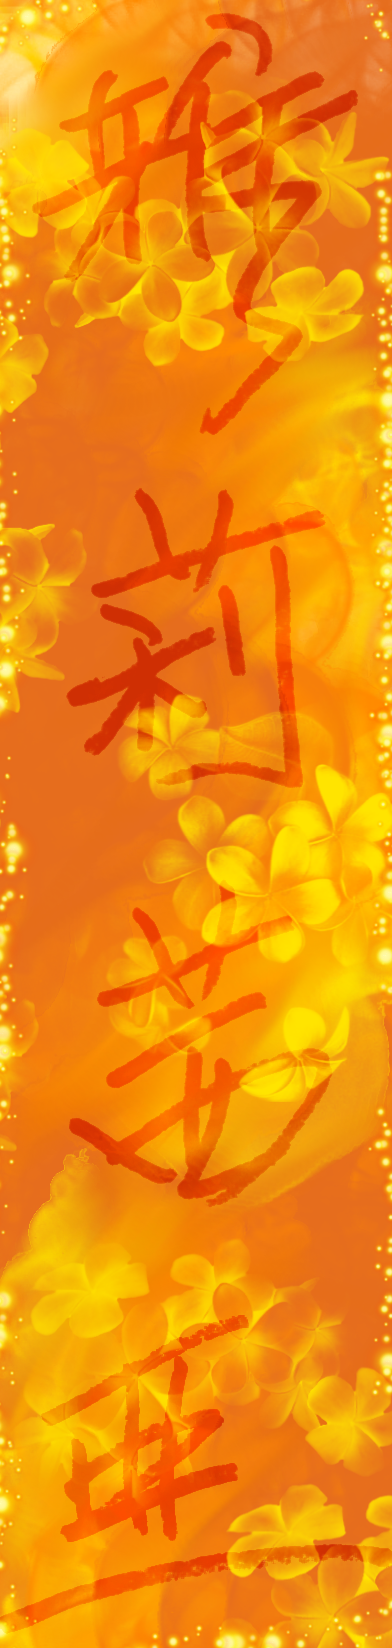 Chinese Calligraphy by digipukamon